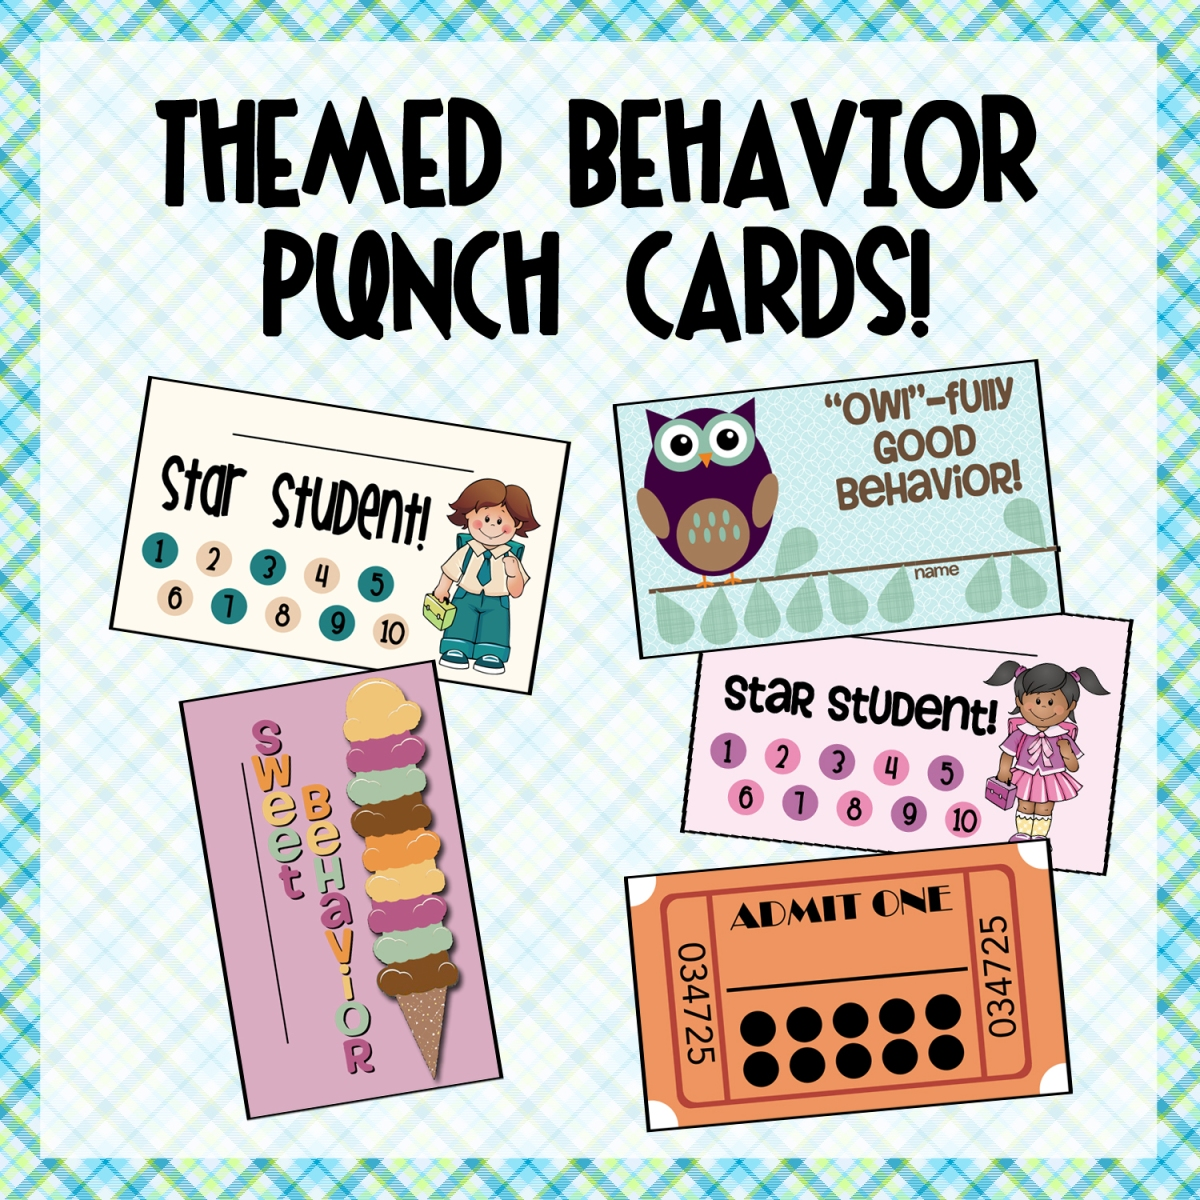 New Product  Behavior Punch Cards  Themed Pack  One. 4x6 Frames Bulk. Google Doc Flyer Template. High School Graduation Themes. Cute Dresses For Graduation. House Rental Contract Template. Psychiatric Progress Note Template. Person Centered Planning Template. Inspirational High School Graduation Speeches